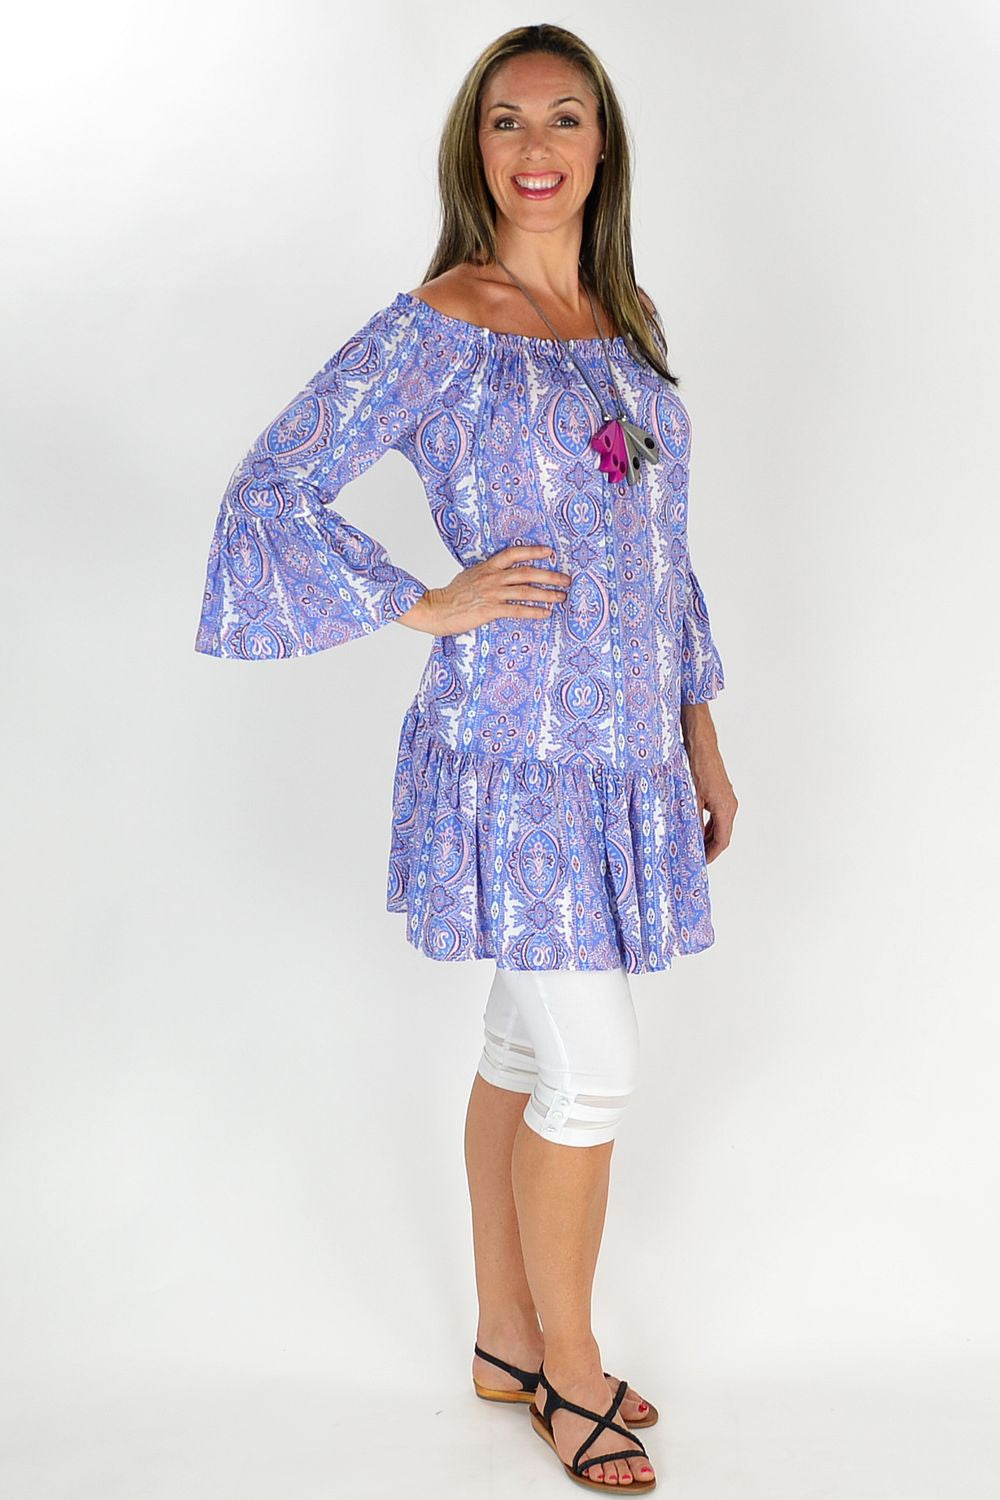 Persian Princess Tunic - at I Love Tunics @ www.ilovetunics.com = Number One! Tunics Destination